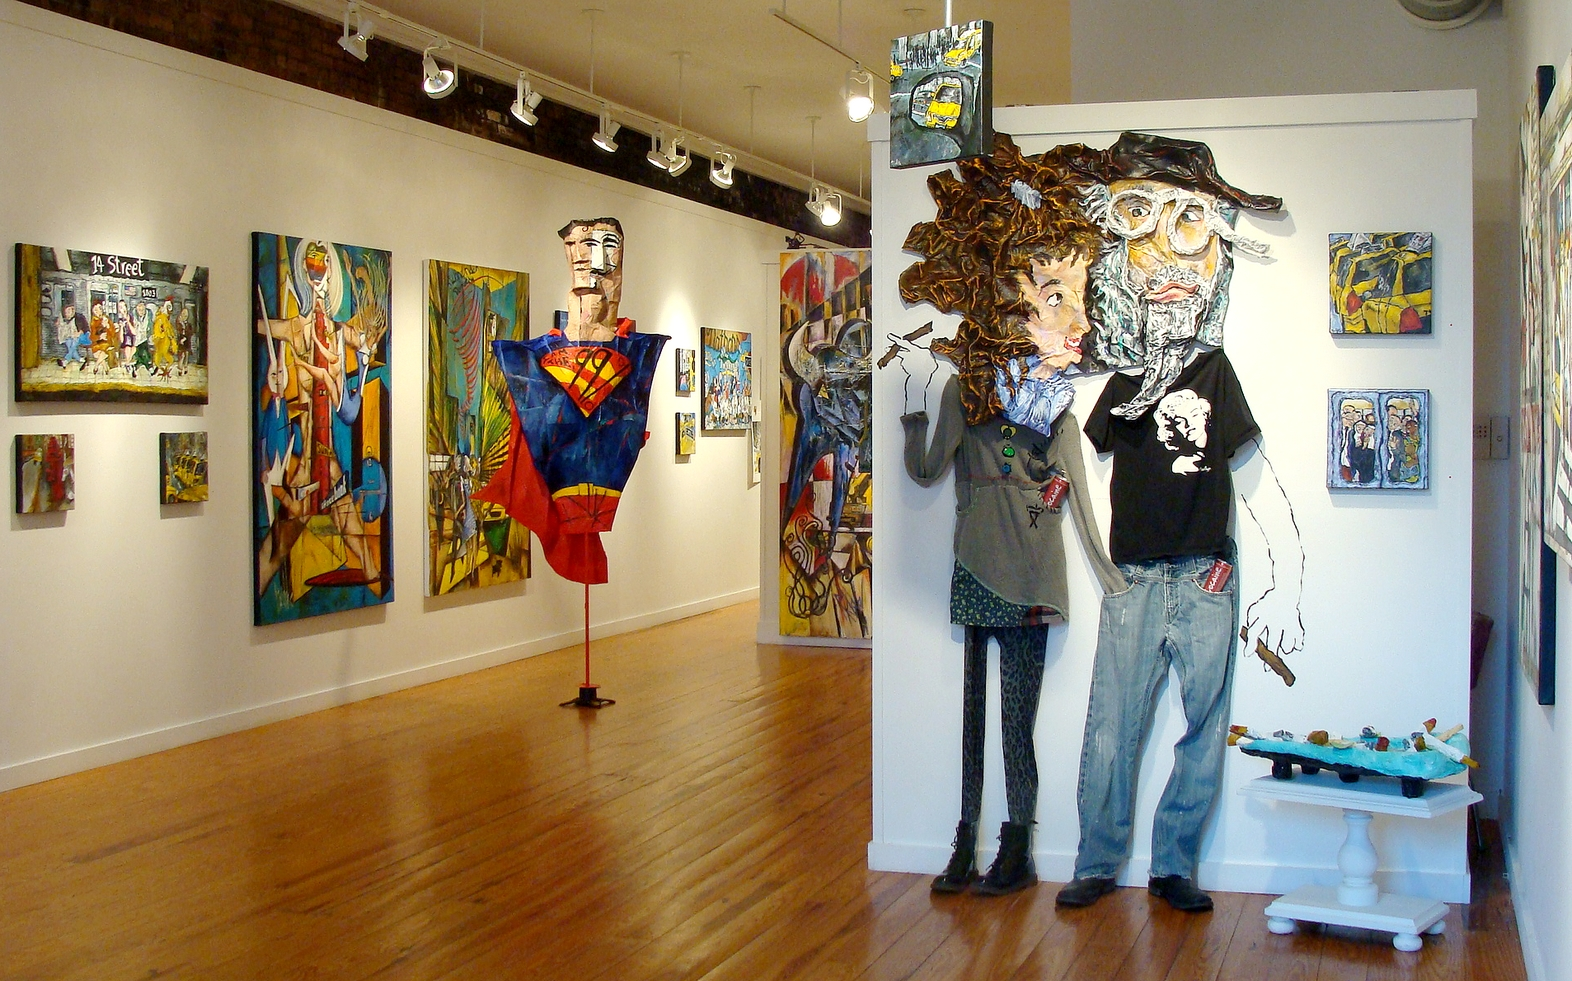 Barbara AG and Steven Paul Riddle, May Exhibit, New York